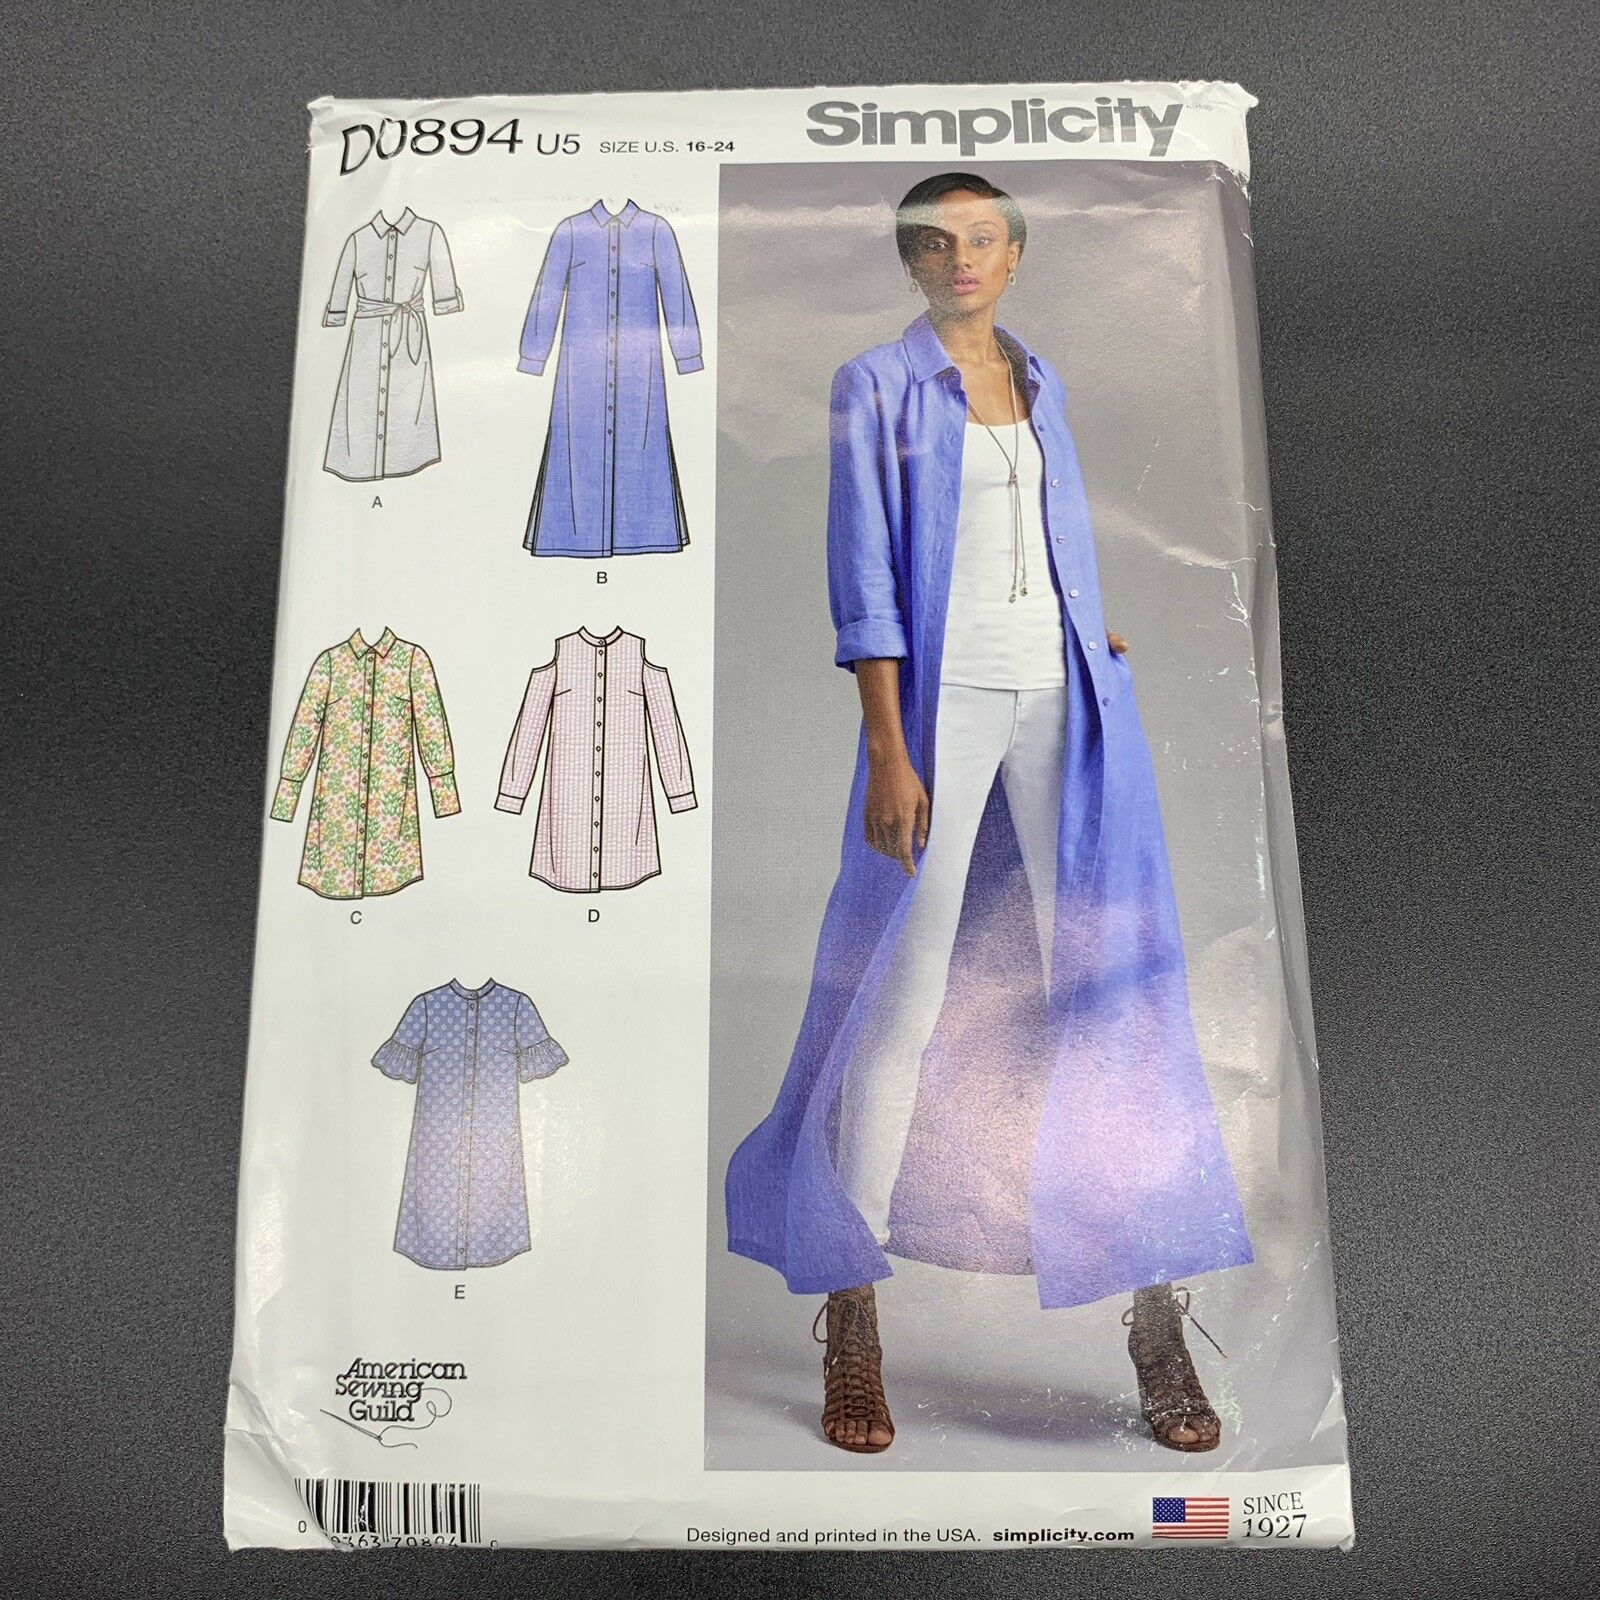 Petite Shirt Dress or Duster Sewing Pattern Simplicity 8546 Plus Sizes 16-24